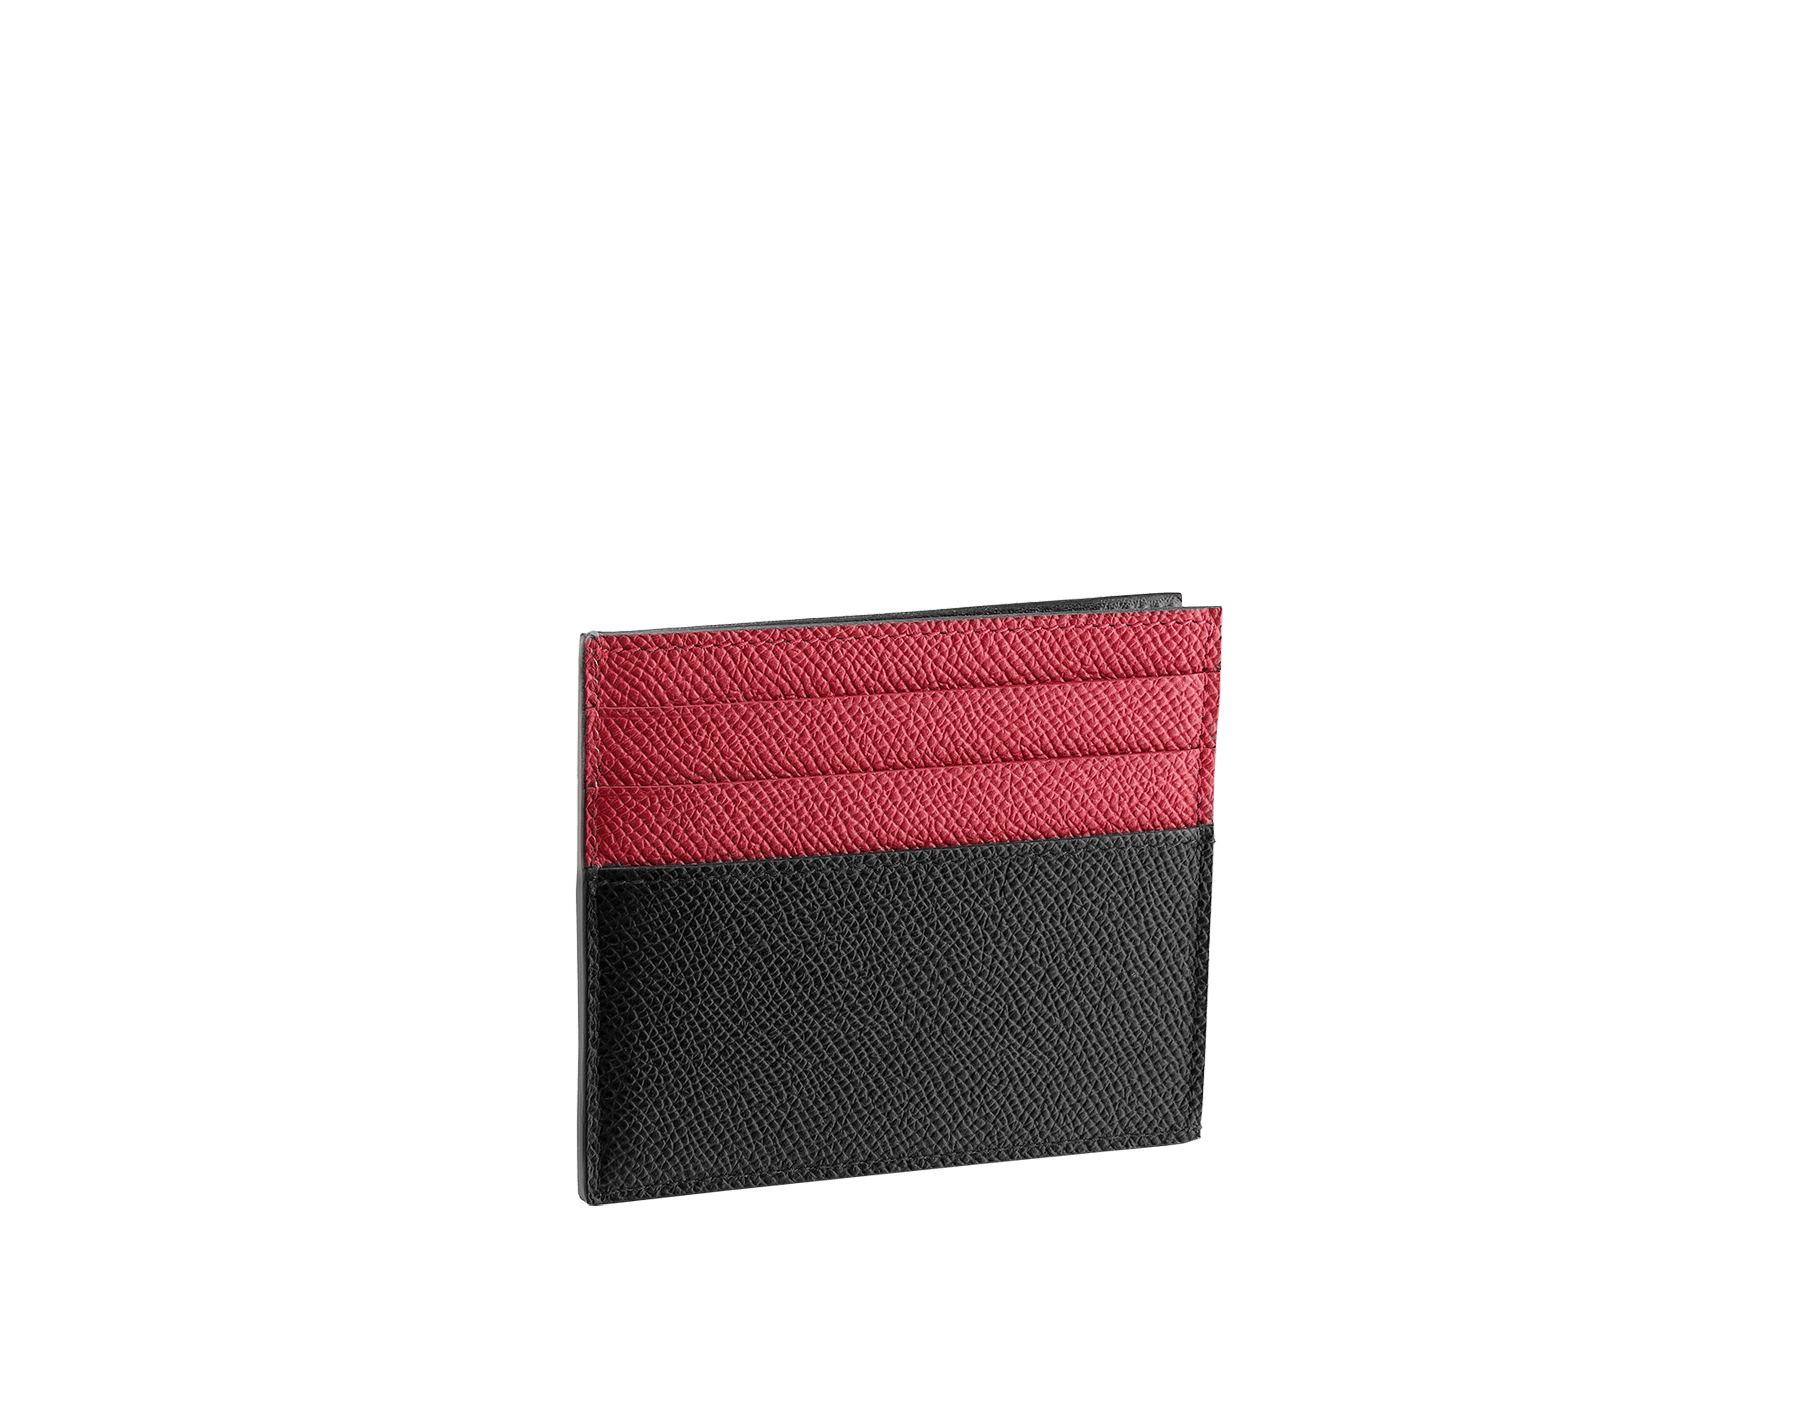 BVLGARI BVLGARI open credit card holder in black and ruby dahlia grain calf leather and black nappa lining. Iconic logo décor in palladium plated brass. 288309 image 2